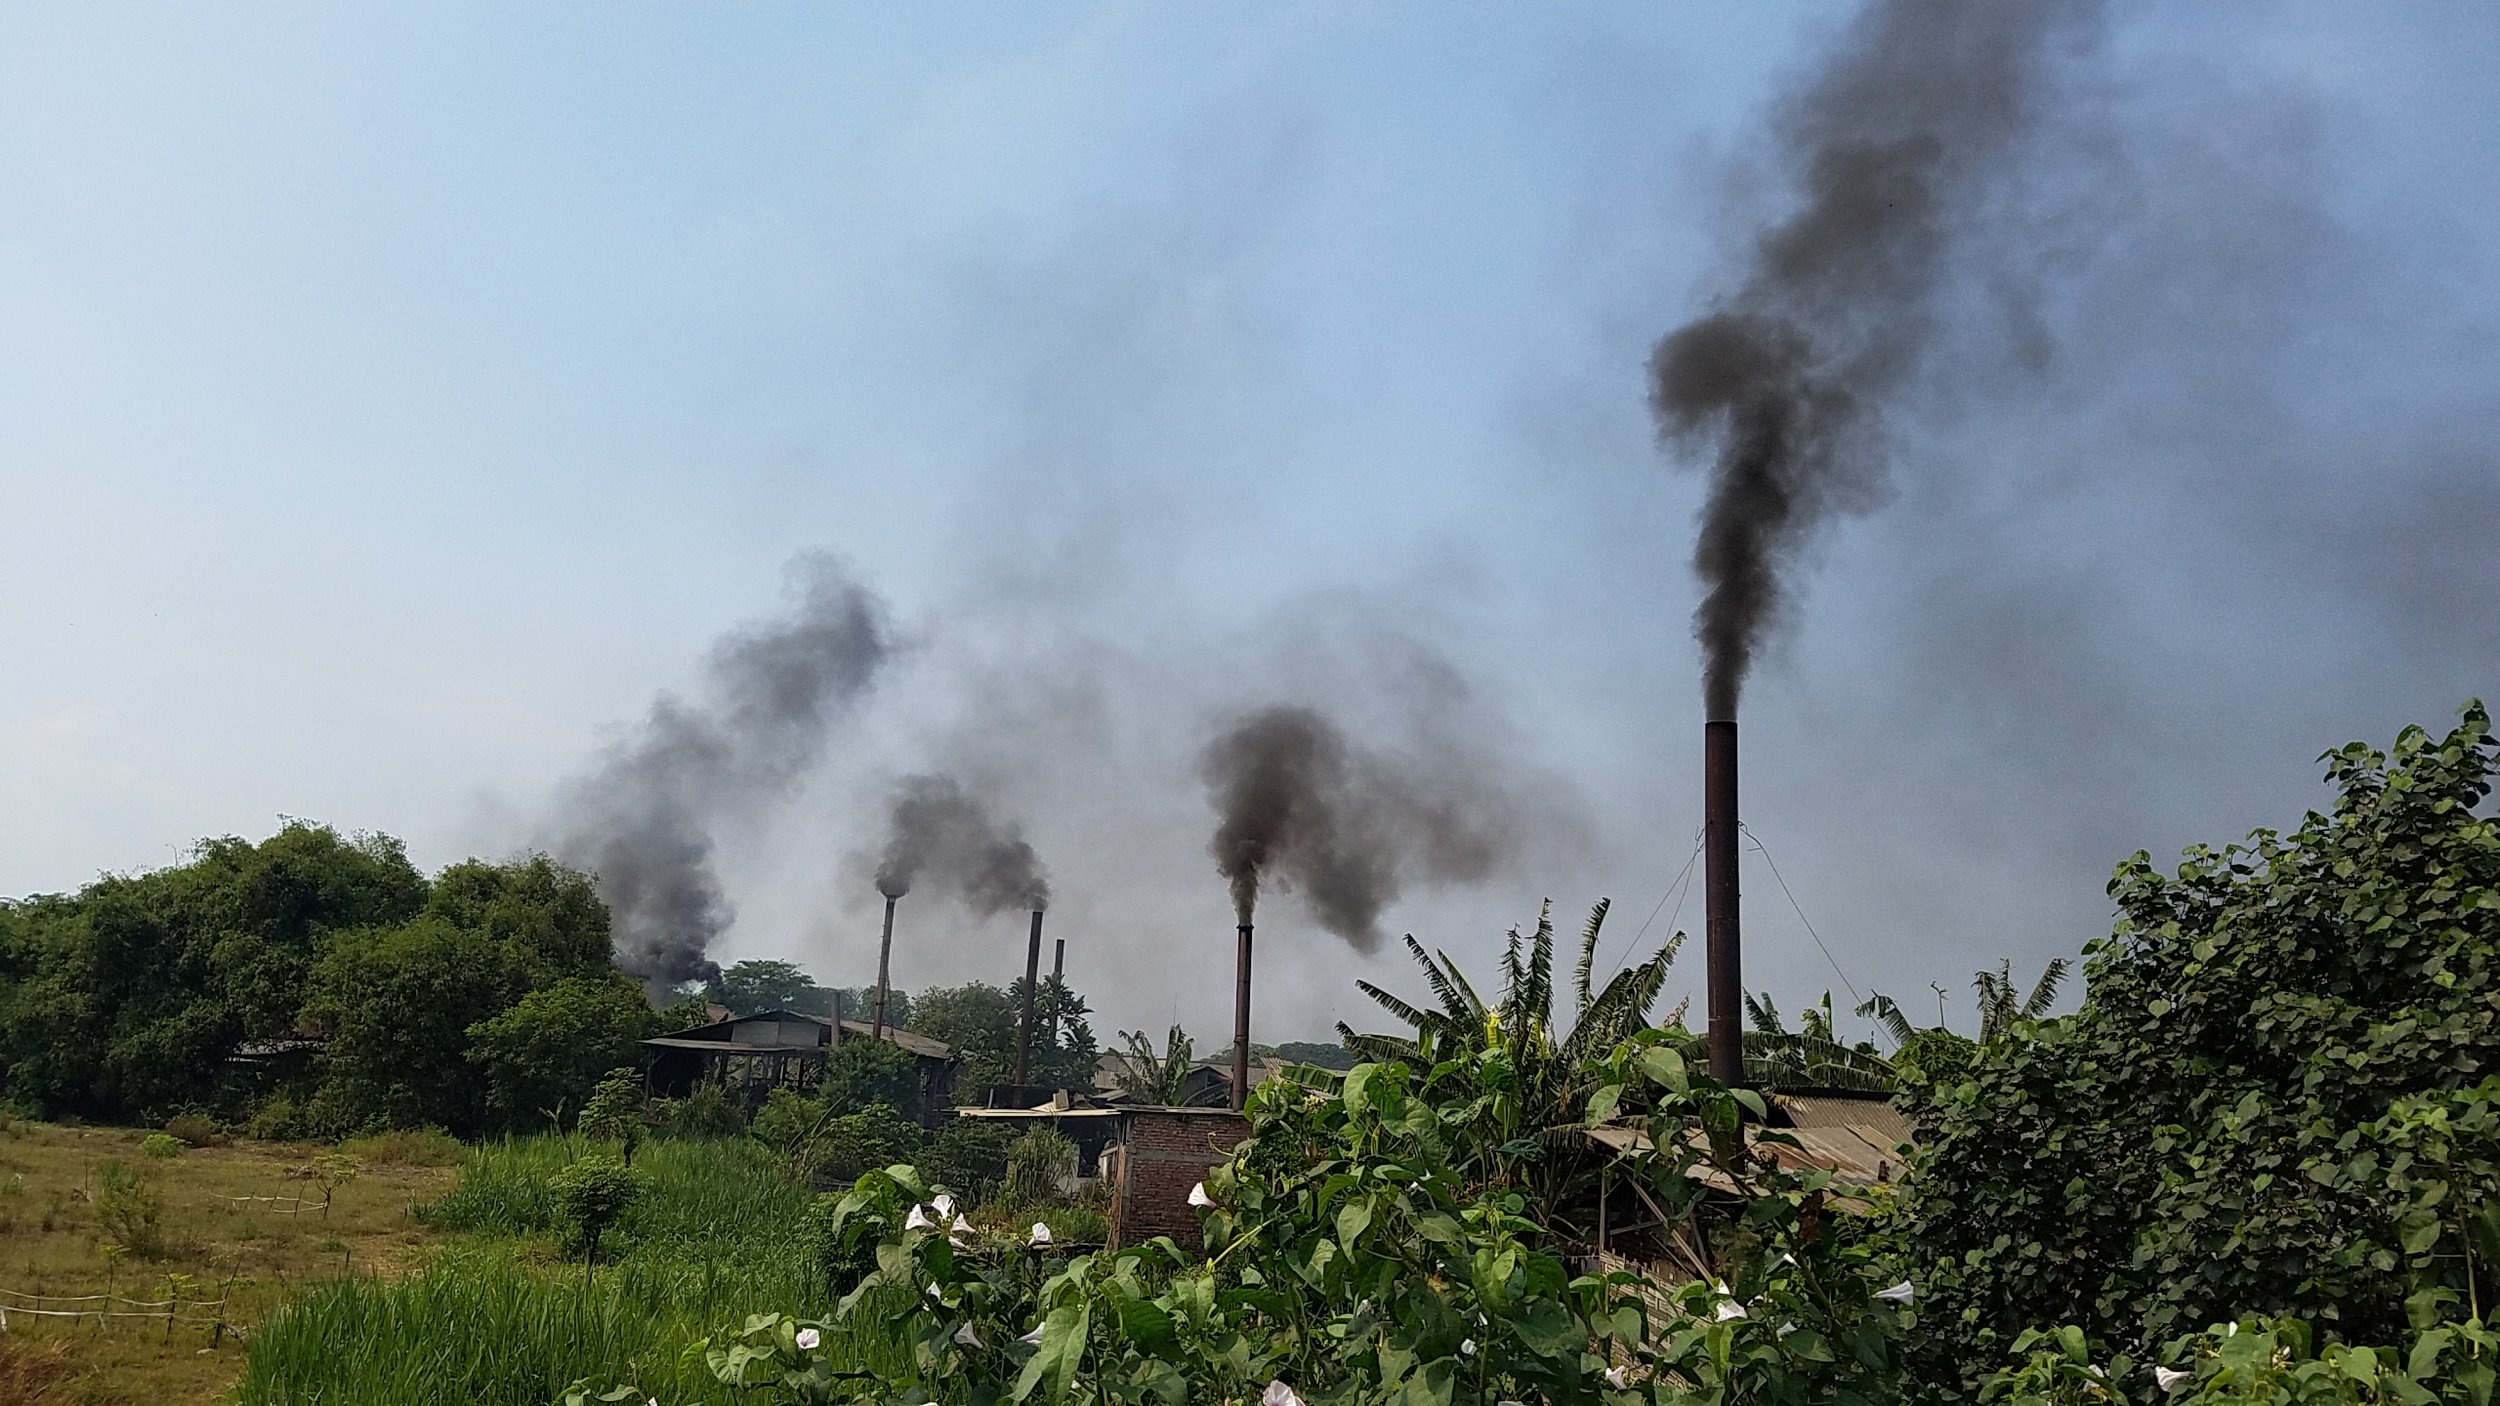 Developing countries like Indonesia are flooded with so much plastic waste from Western nations that there is little else to do with it but burn if as cheap fuel, releasing toxic fumes full of dioxin and heavy metals into communities.